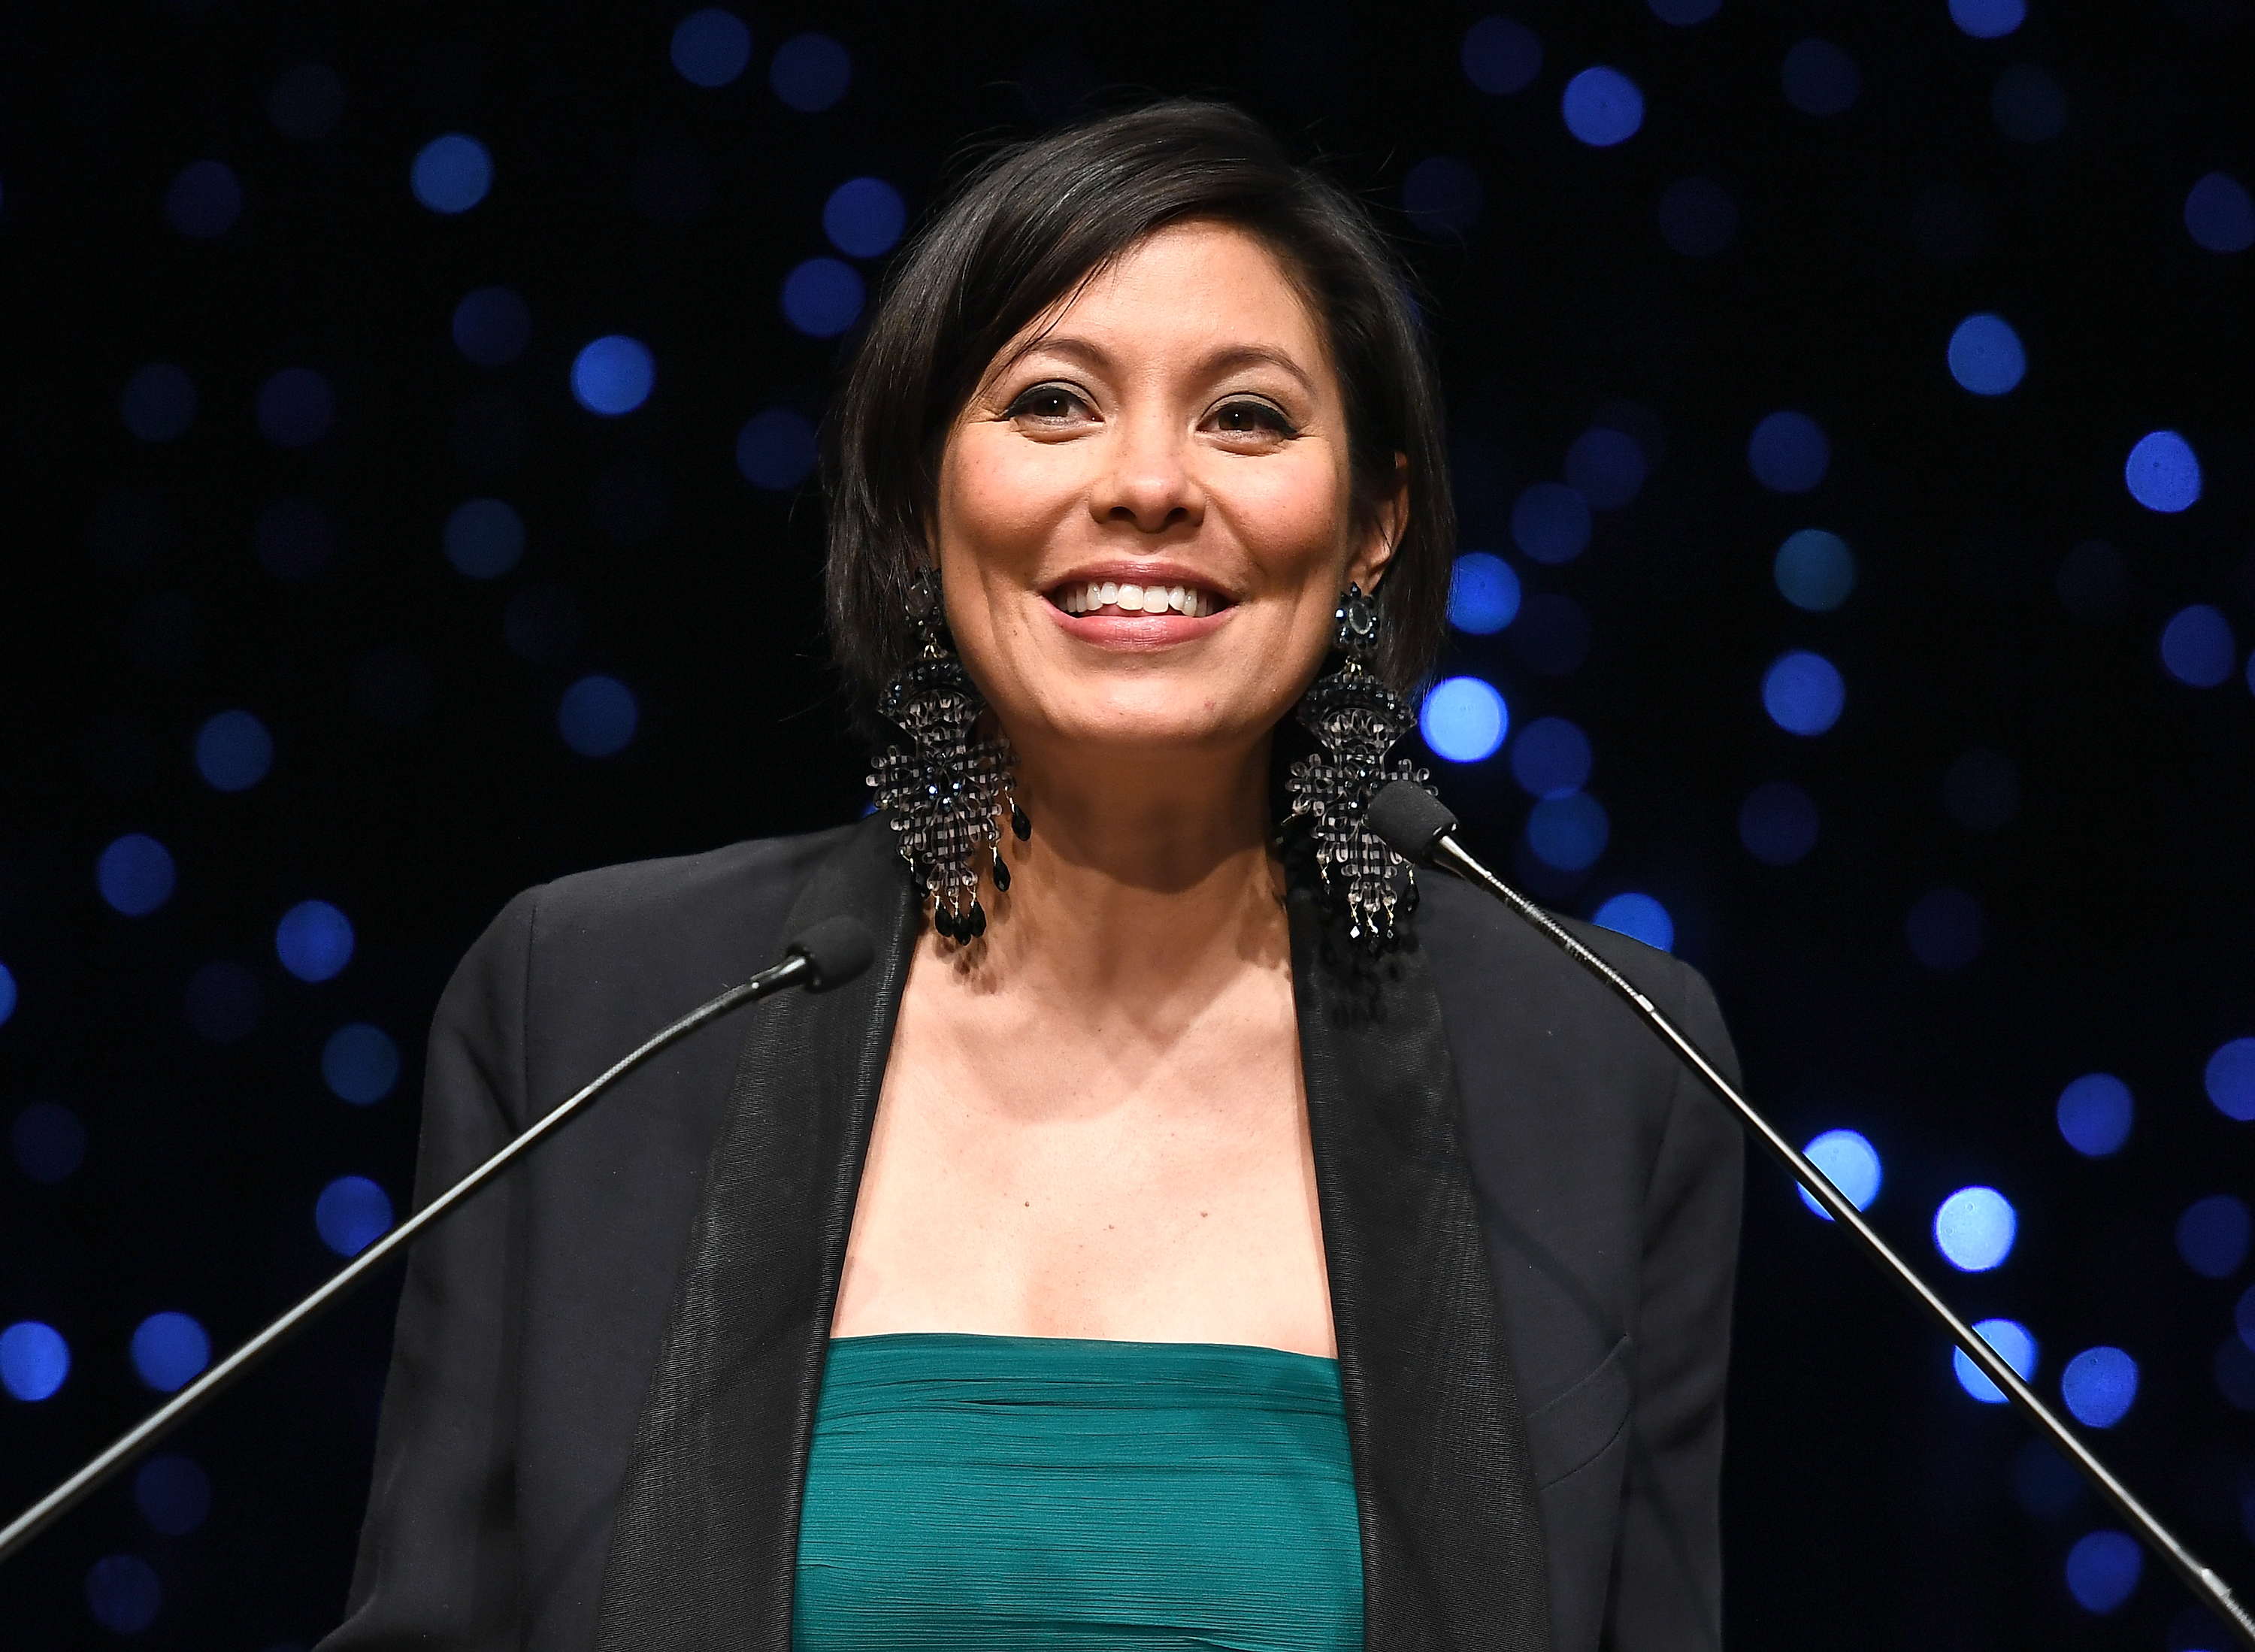 Alex Wagner speaks onstage during 69th Writers Guild Awards New York Ceremony at Edison Ballroom on February 19, 2017 in New York City.